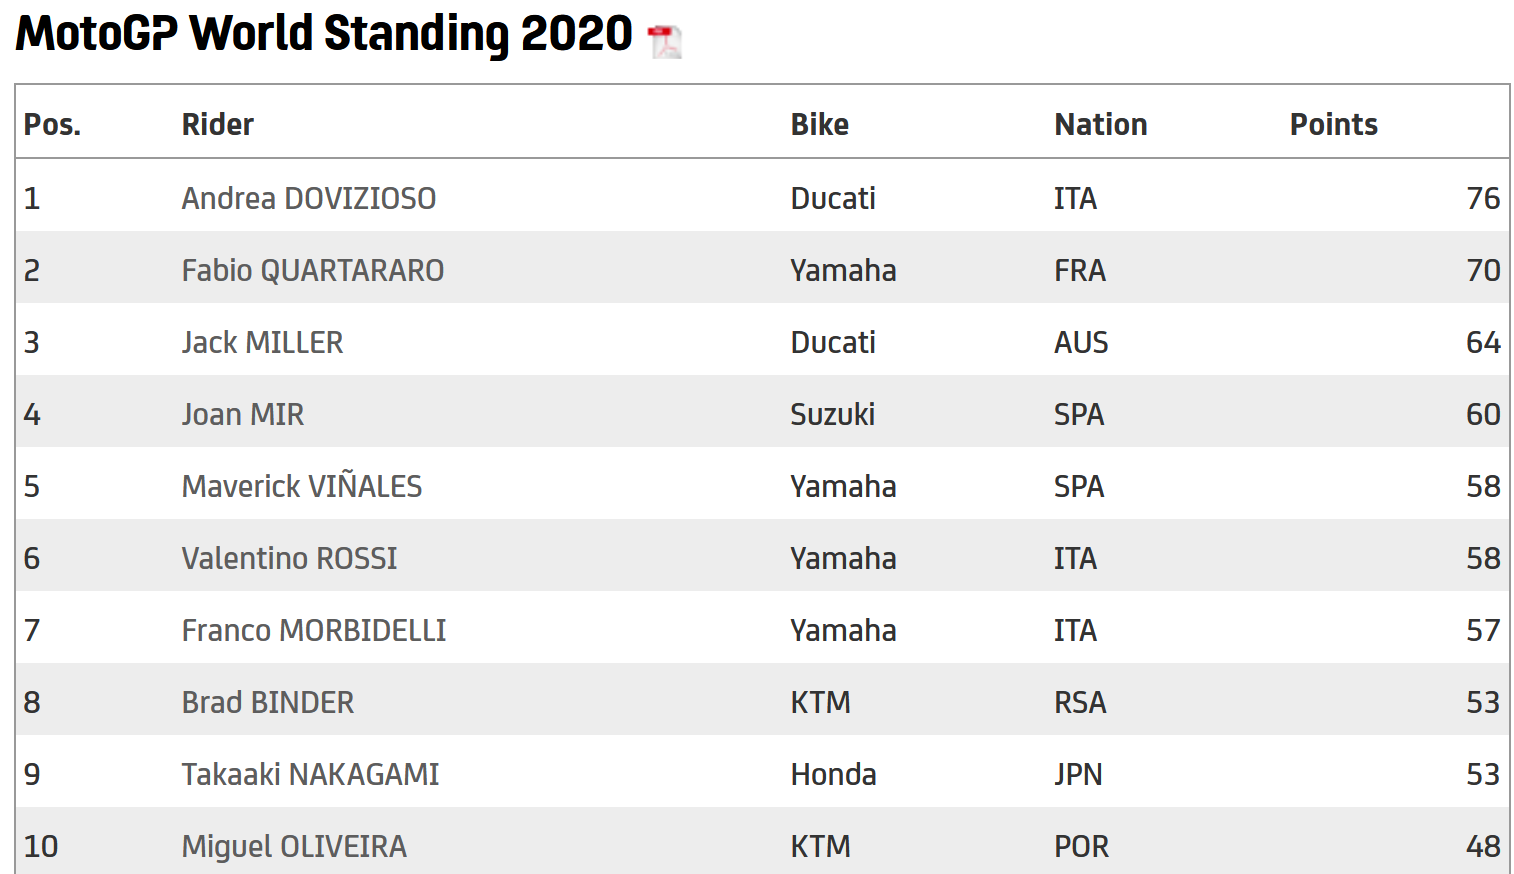 MotoGP top ten 2020 after six rounds